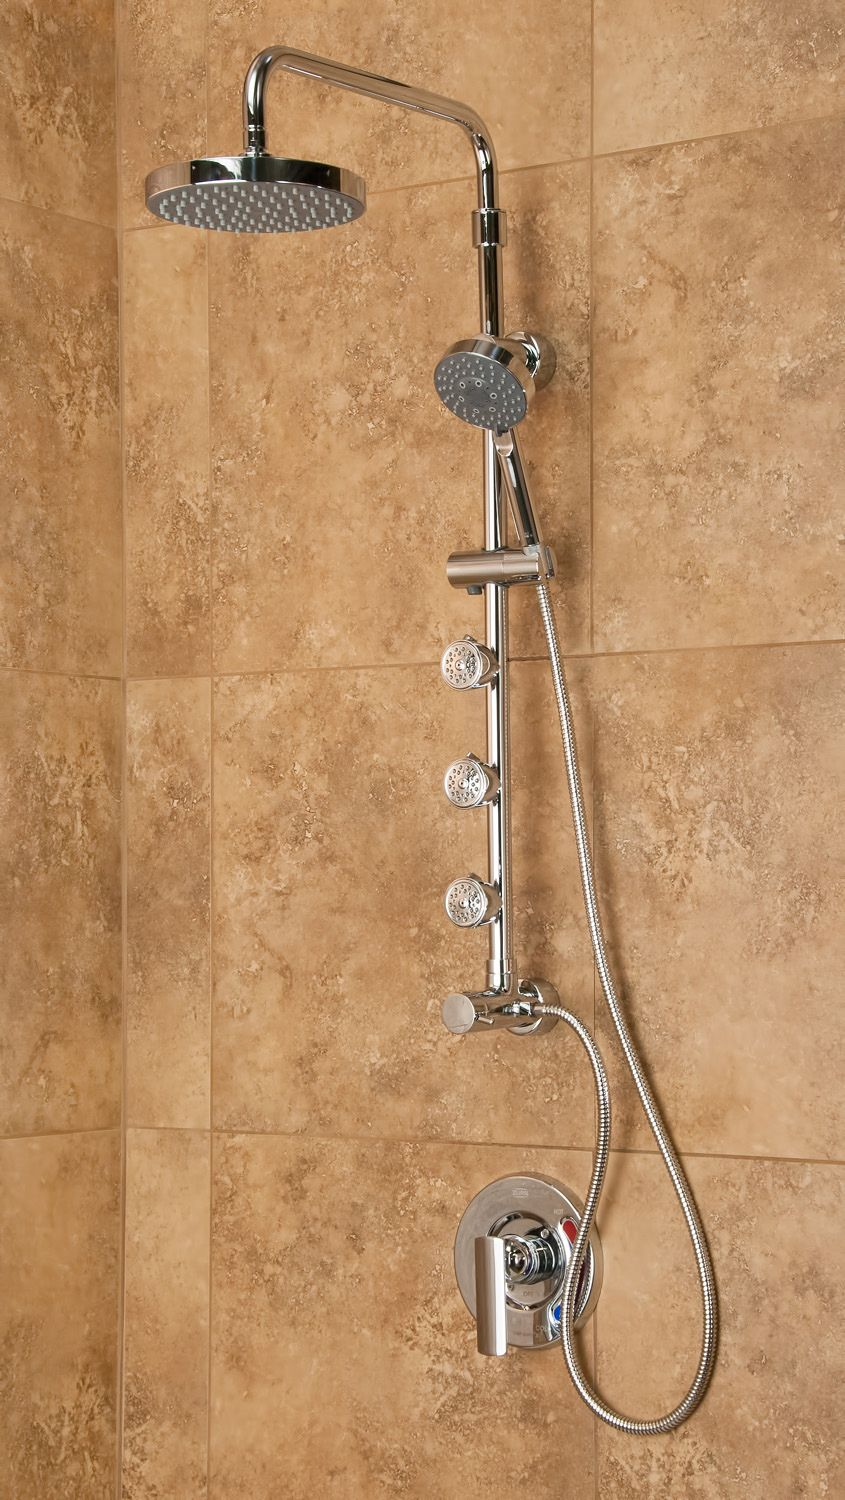 This Luxurious Shower Spa Features A Rainfall Shower Head, A Hand Held Shower  Head And Three Body Jets For The Ultimate In Shower Pampering.